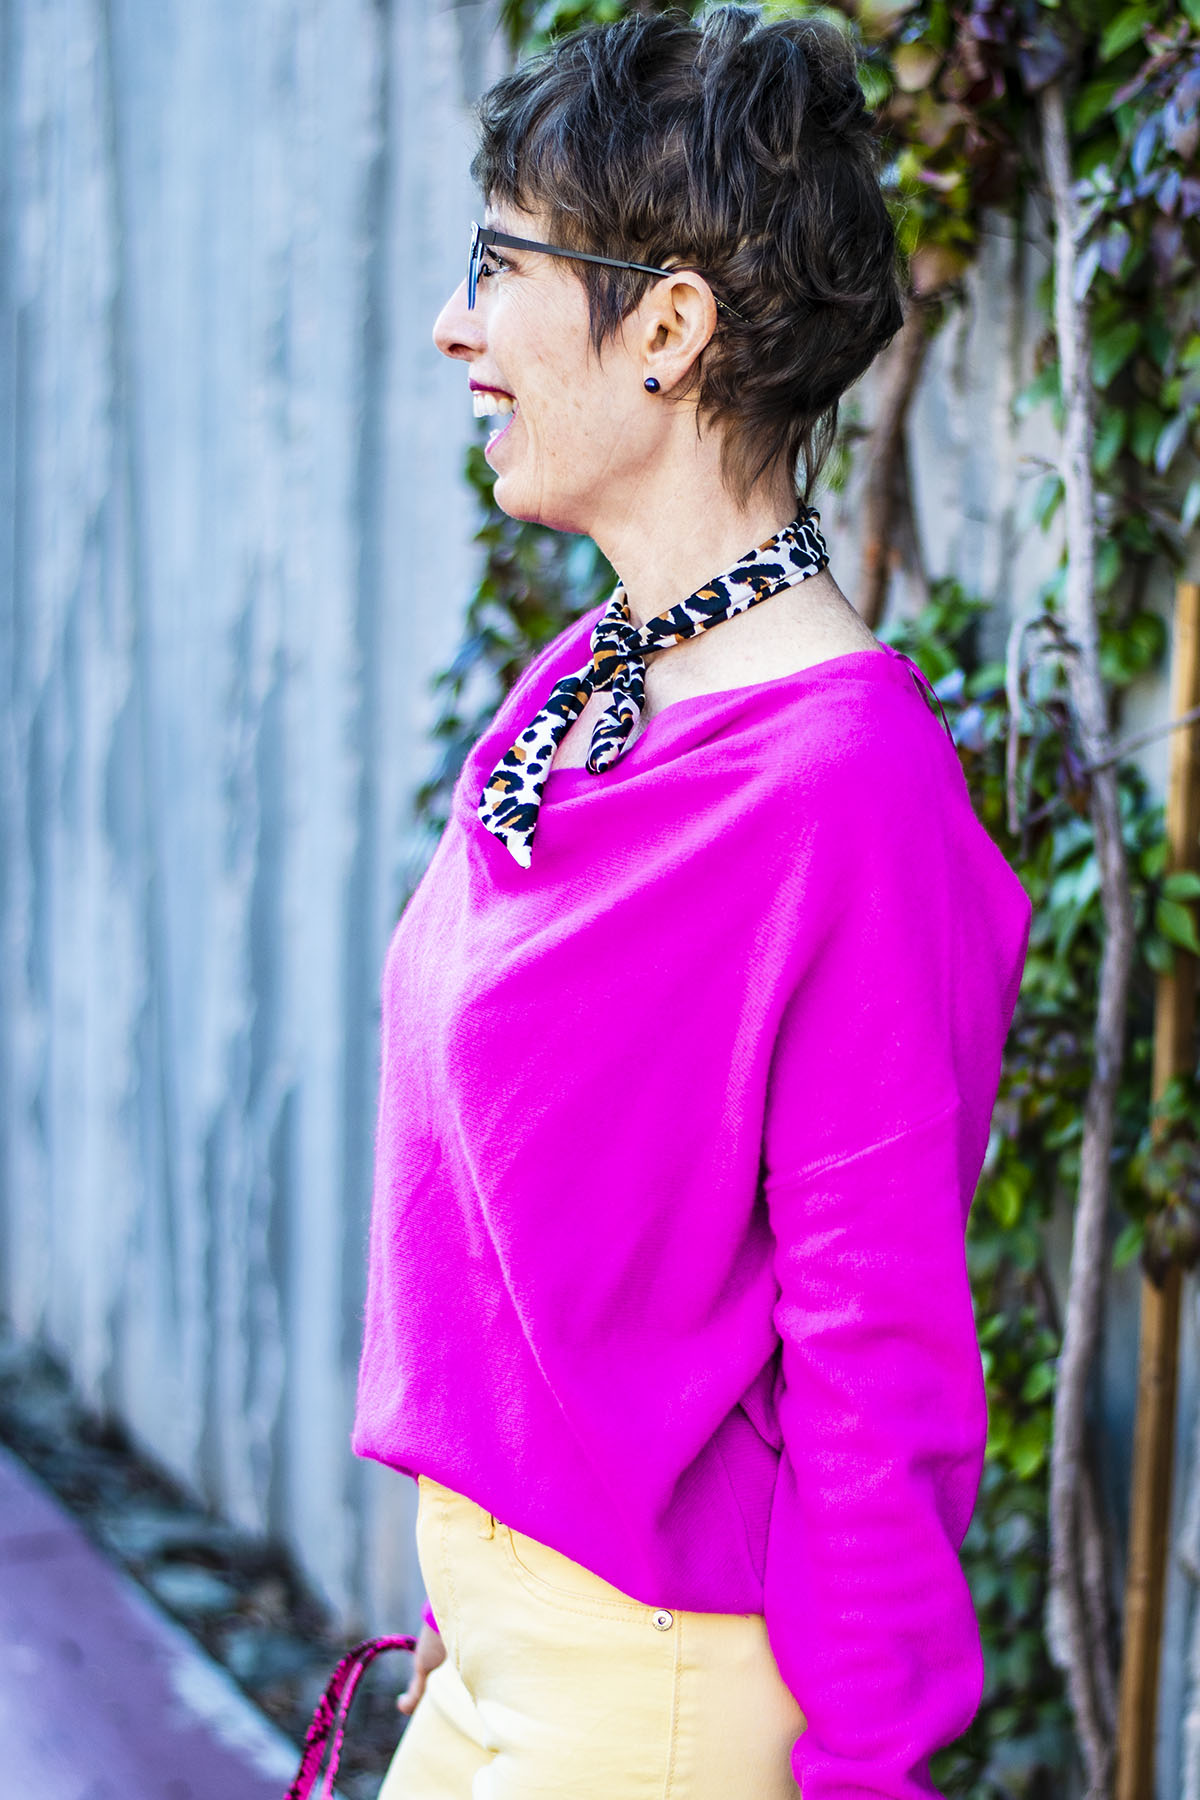 Reliable Ideas for a Neon Pink Sweater Outfit